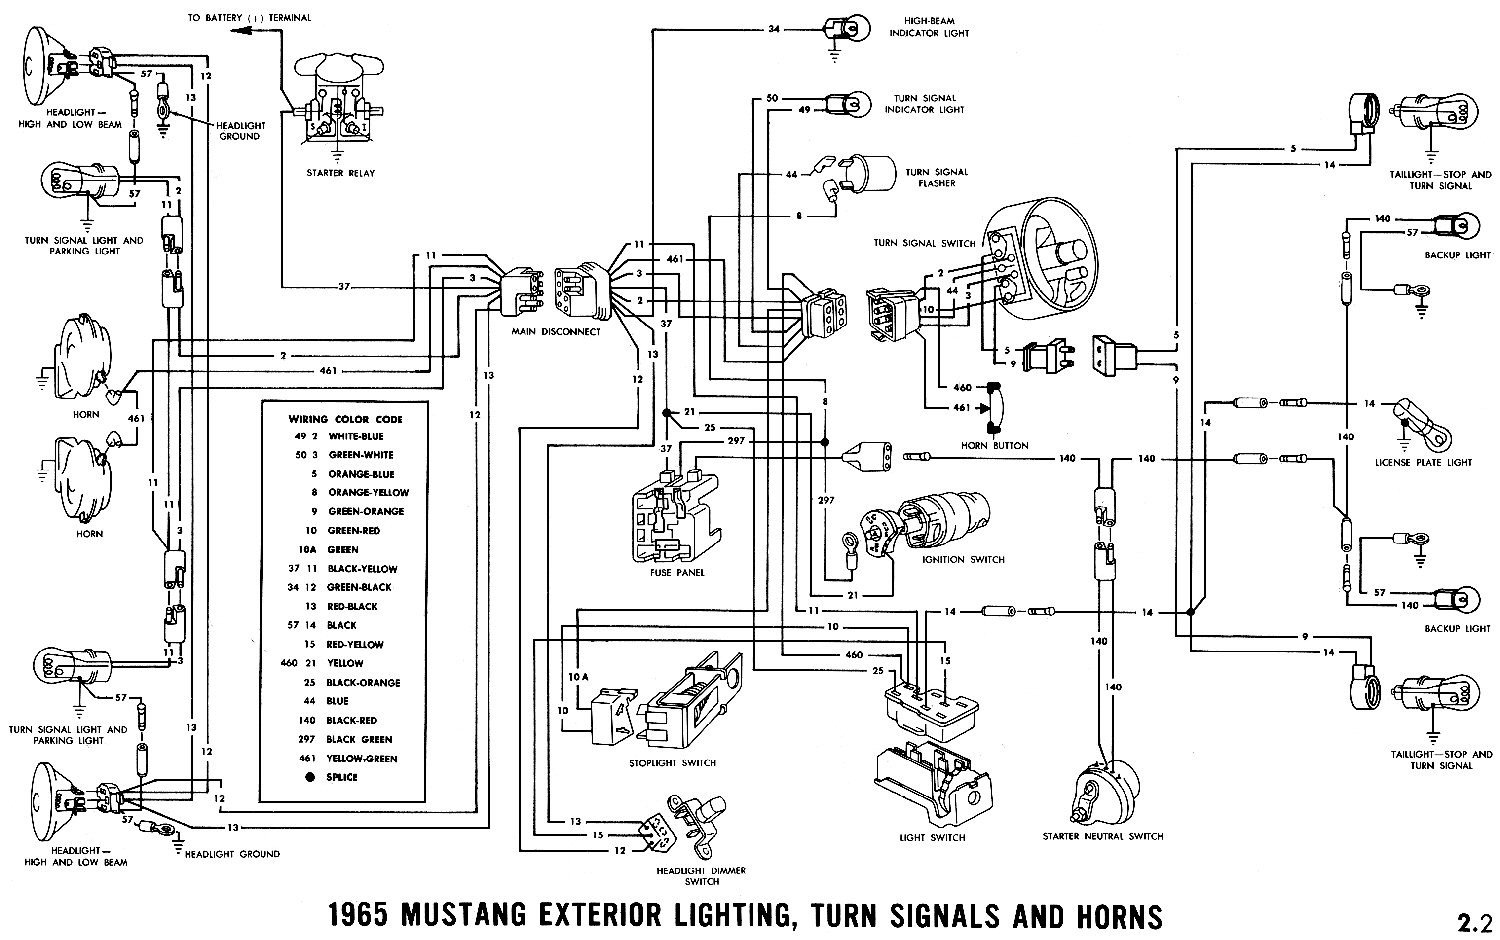 1965 mustang ignition switch wiring diagram download wiring rh faceitsalon com